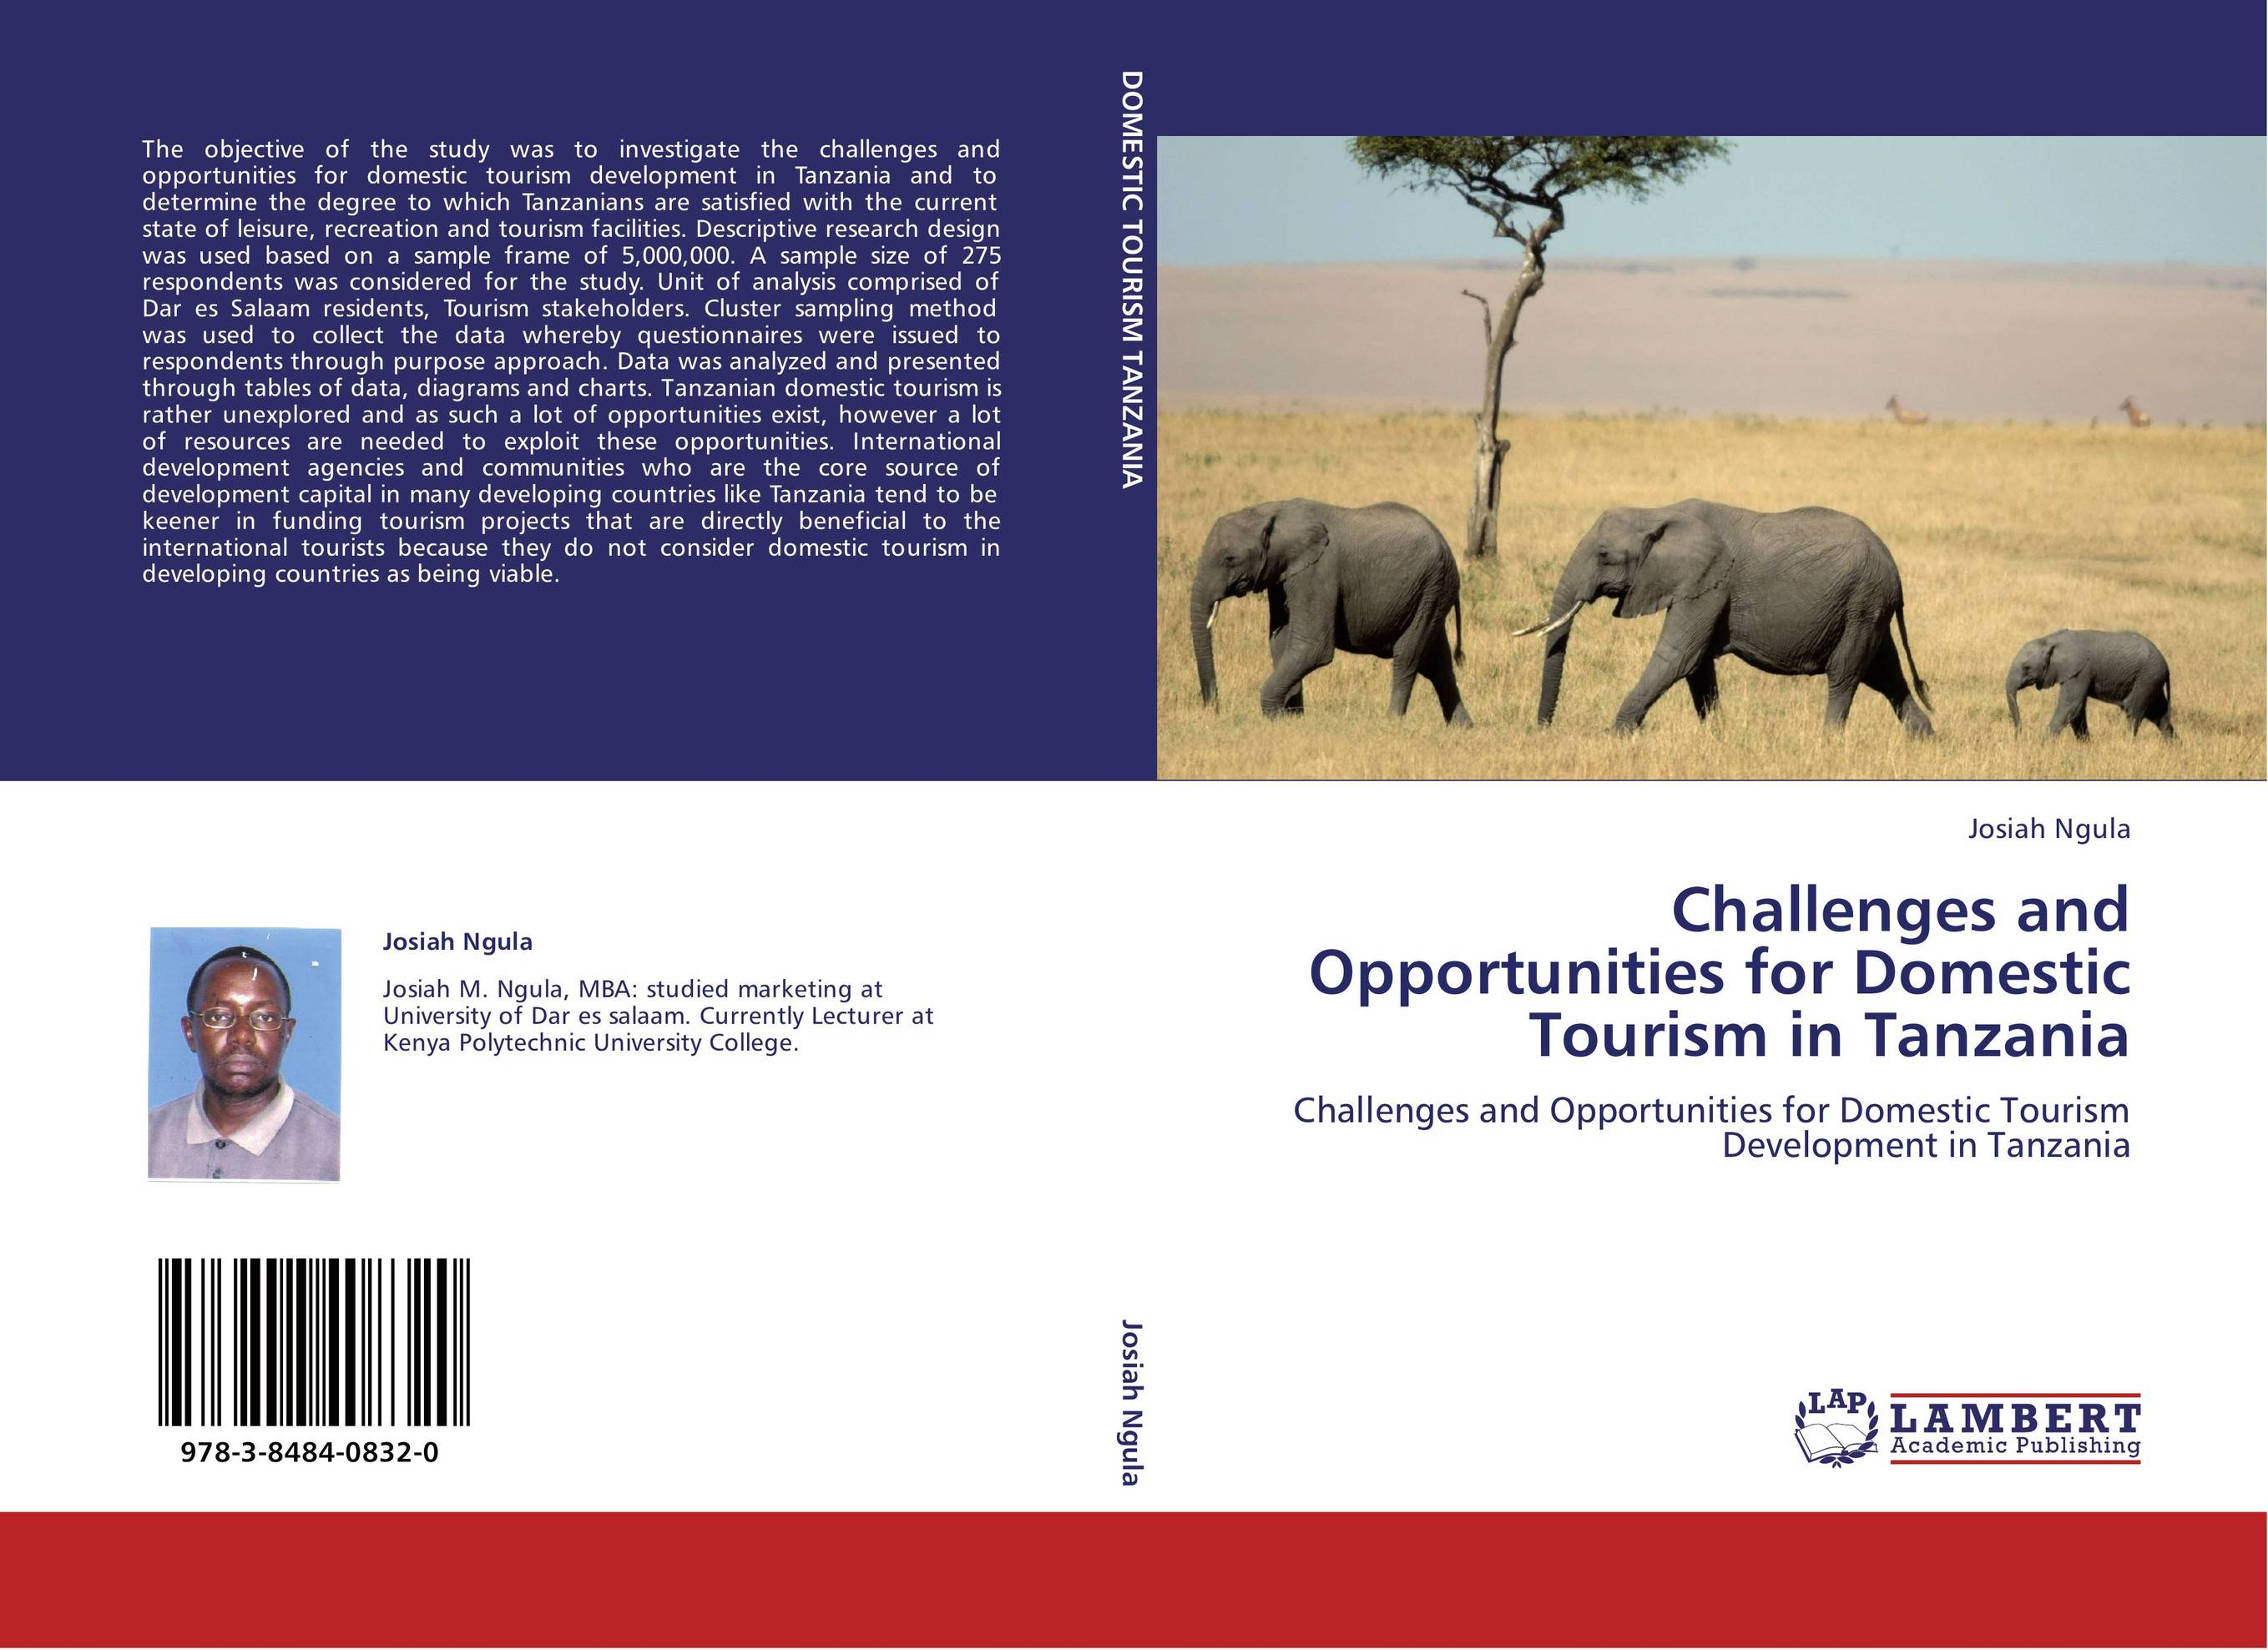 Challenges and Opportunities for Domestic Tourism in Tanzania